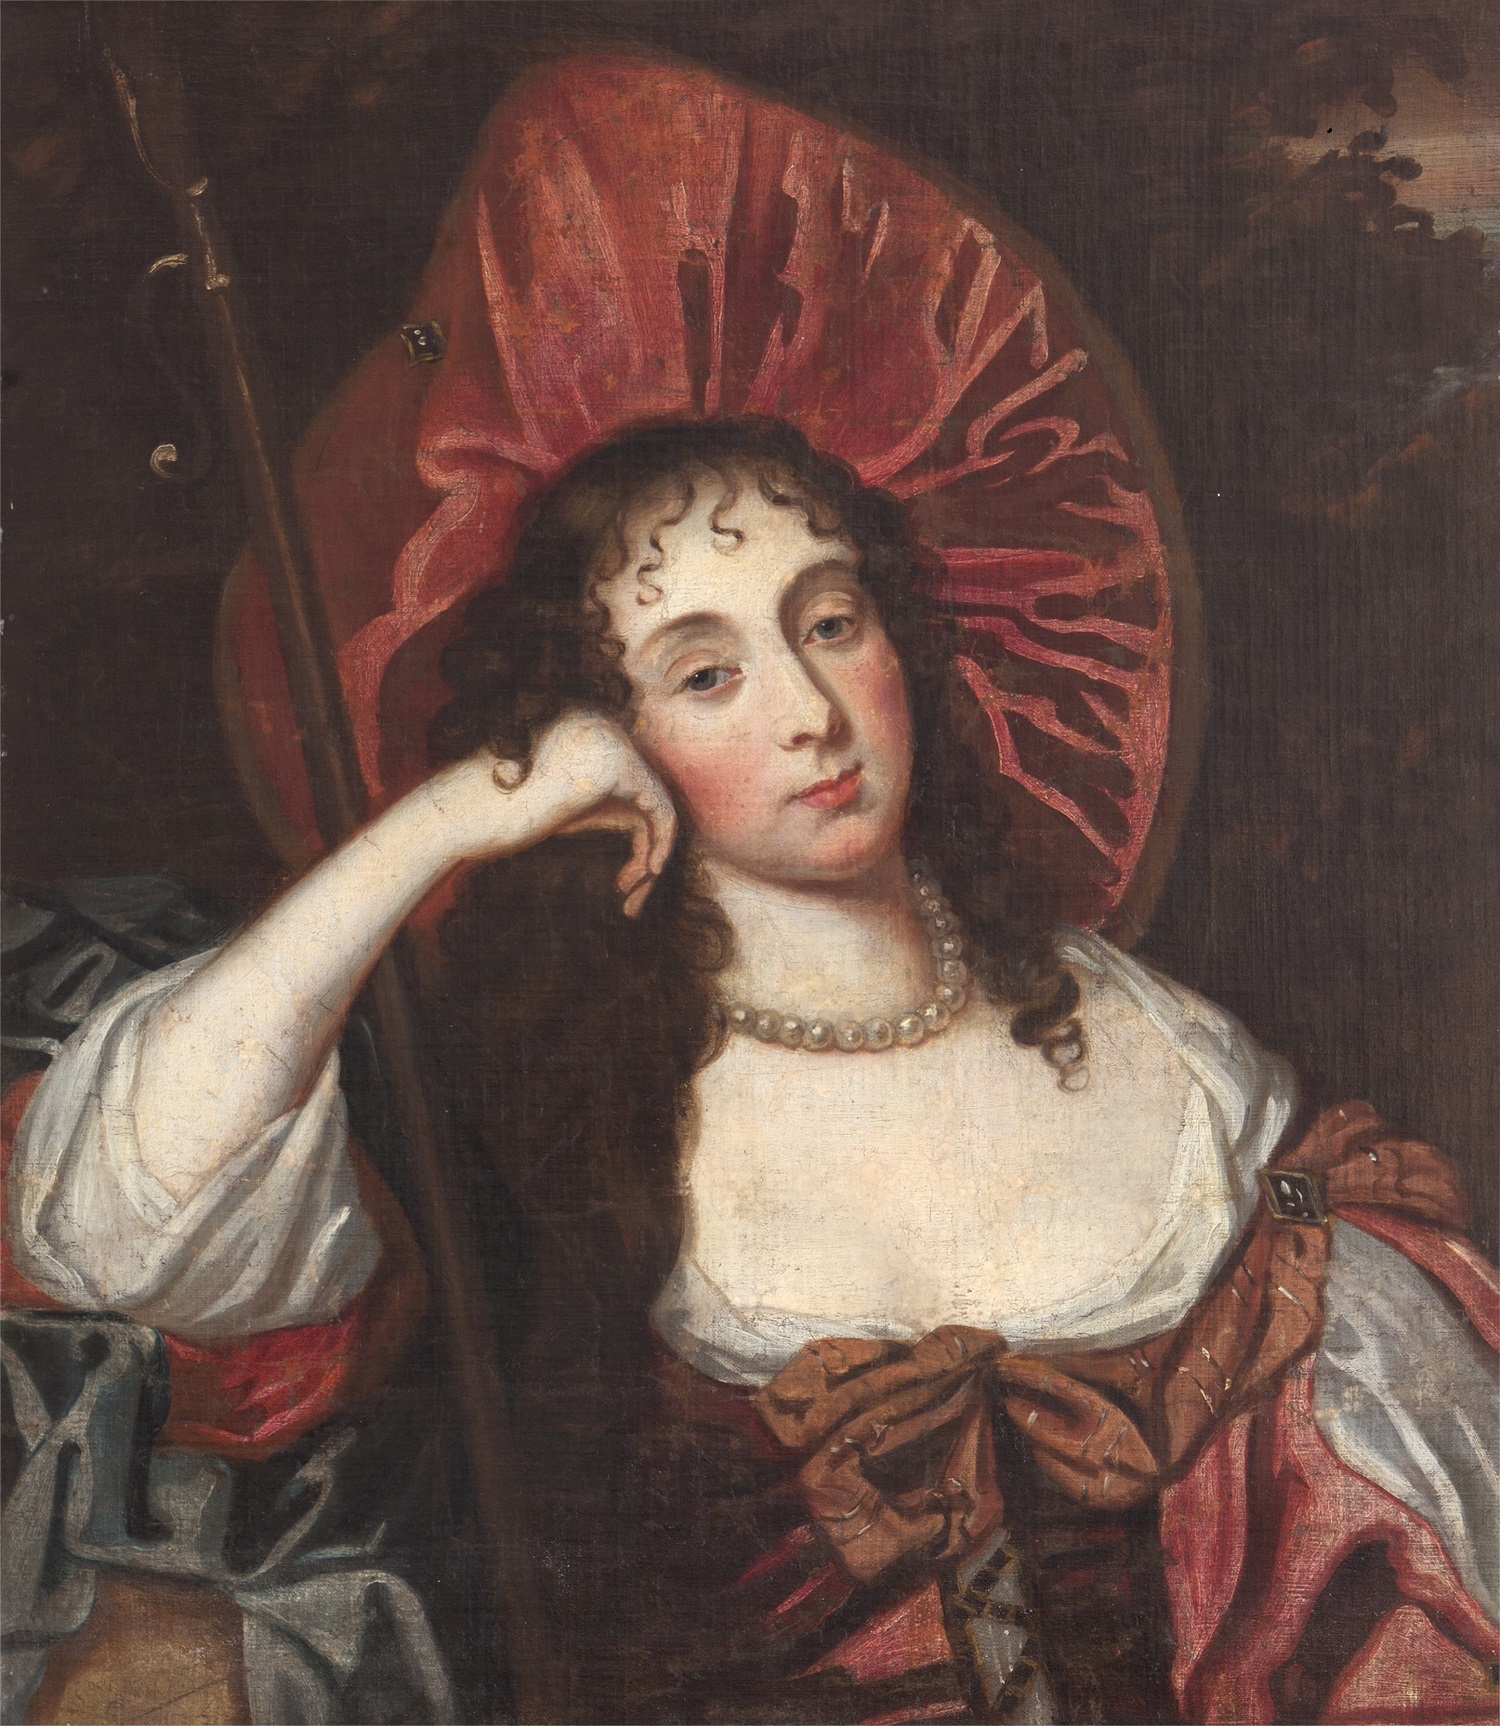 Harlot or Housewife? 17th Century Women at the English Royal Court - Presented by Angus Haldane